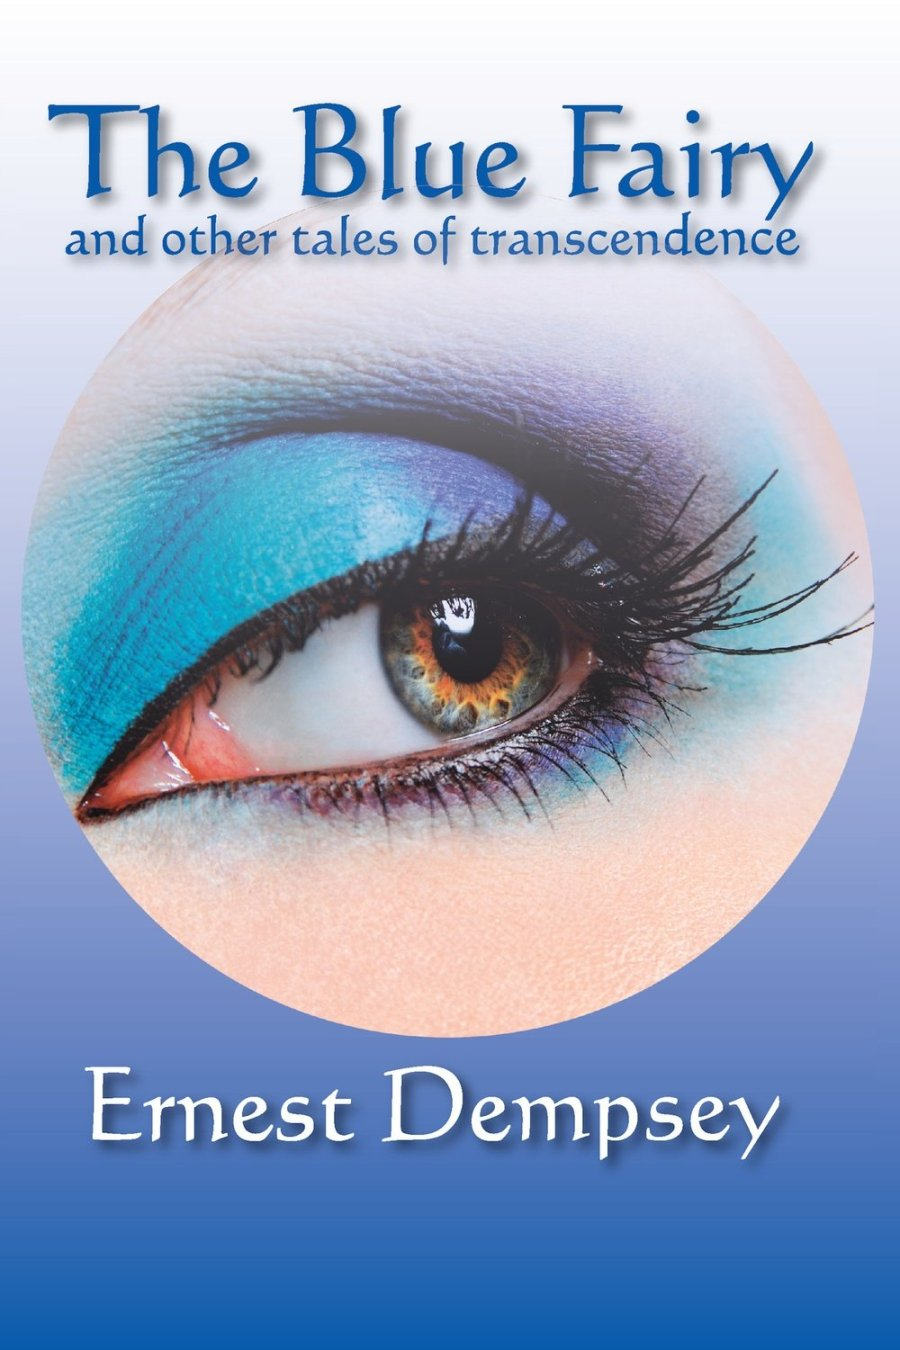 The Blue Fairy: and other Tales of Transcendence